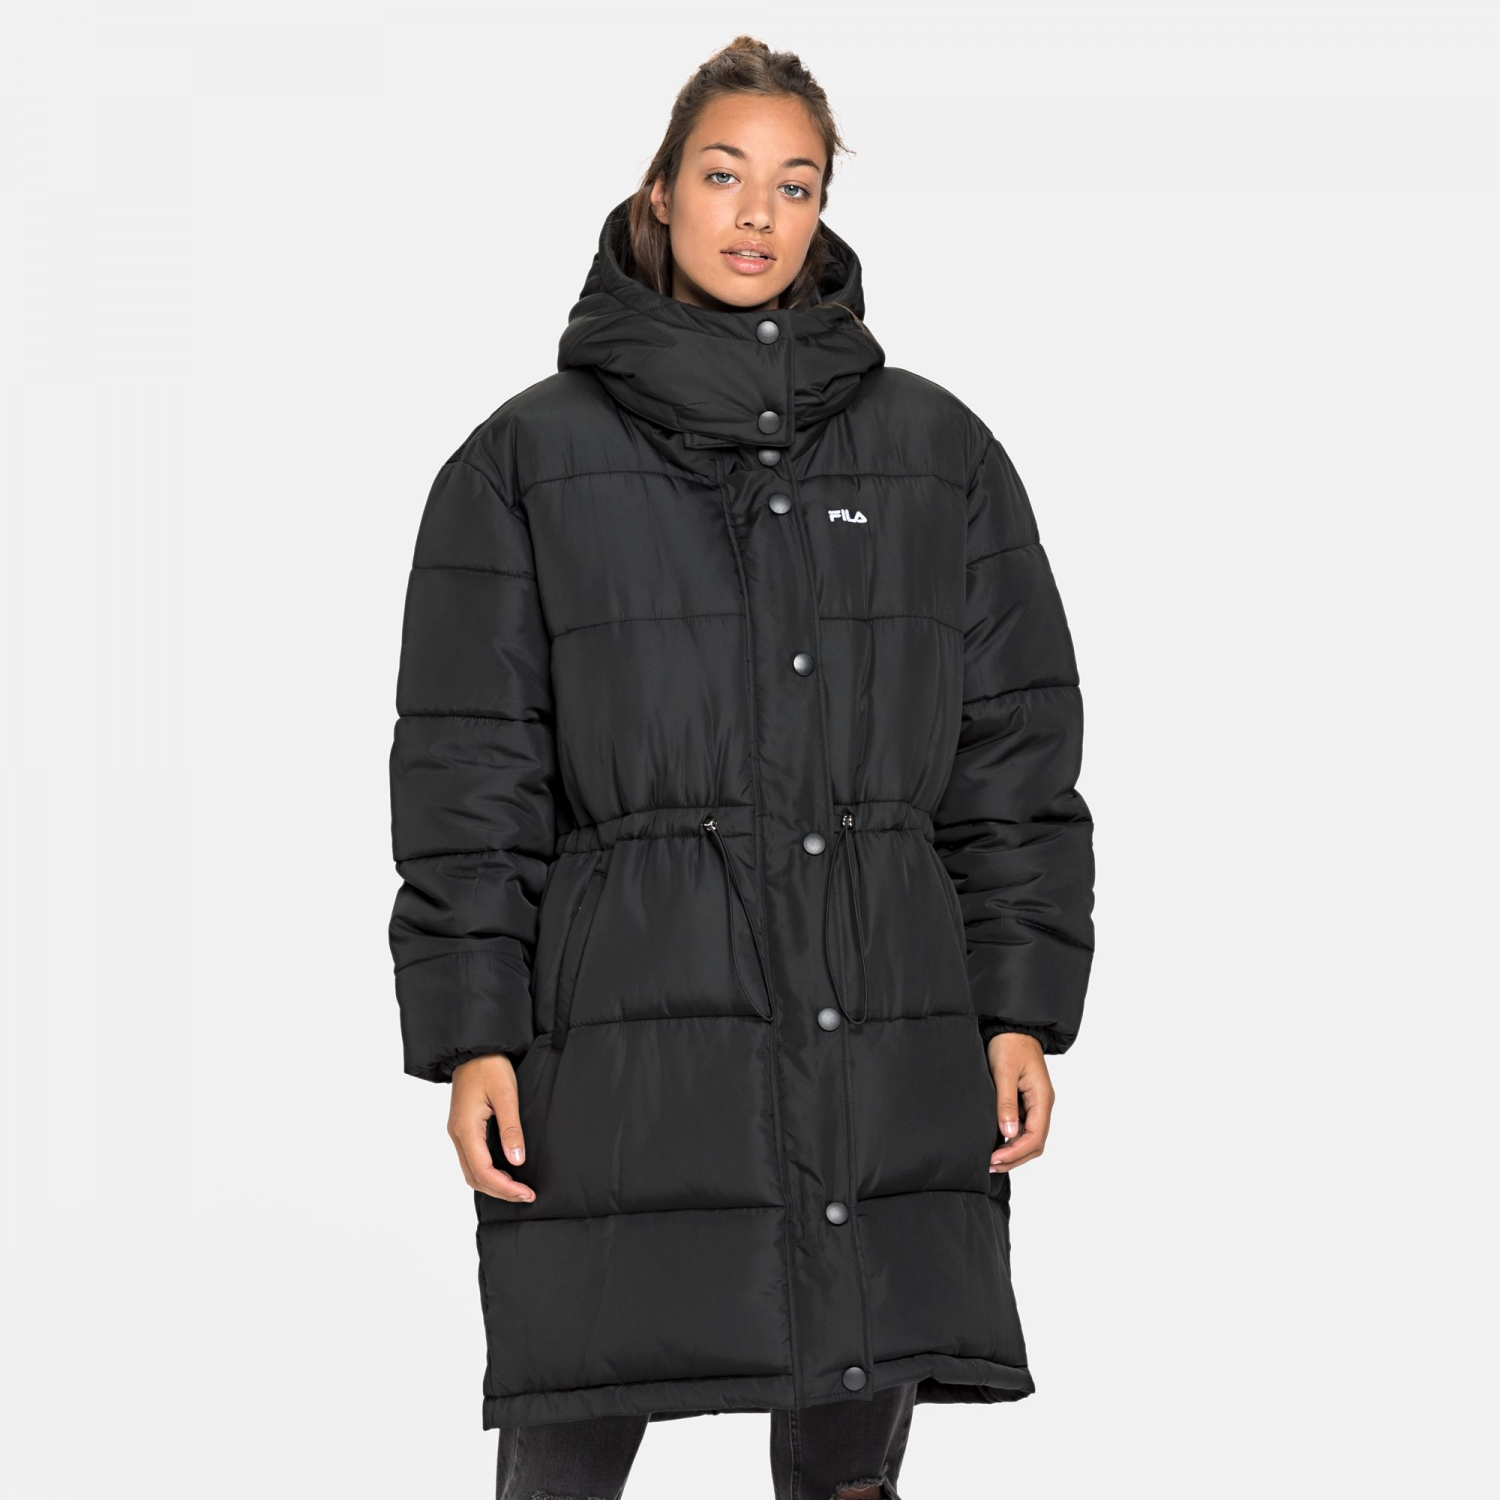 Fila Tender Long Puffer Jacket Bild 1